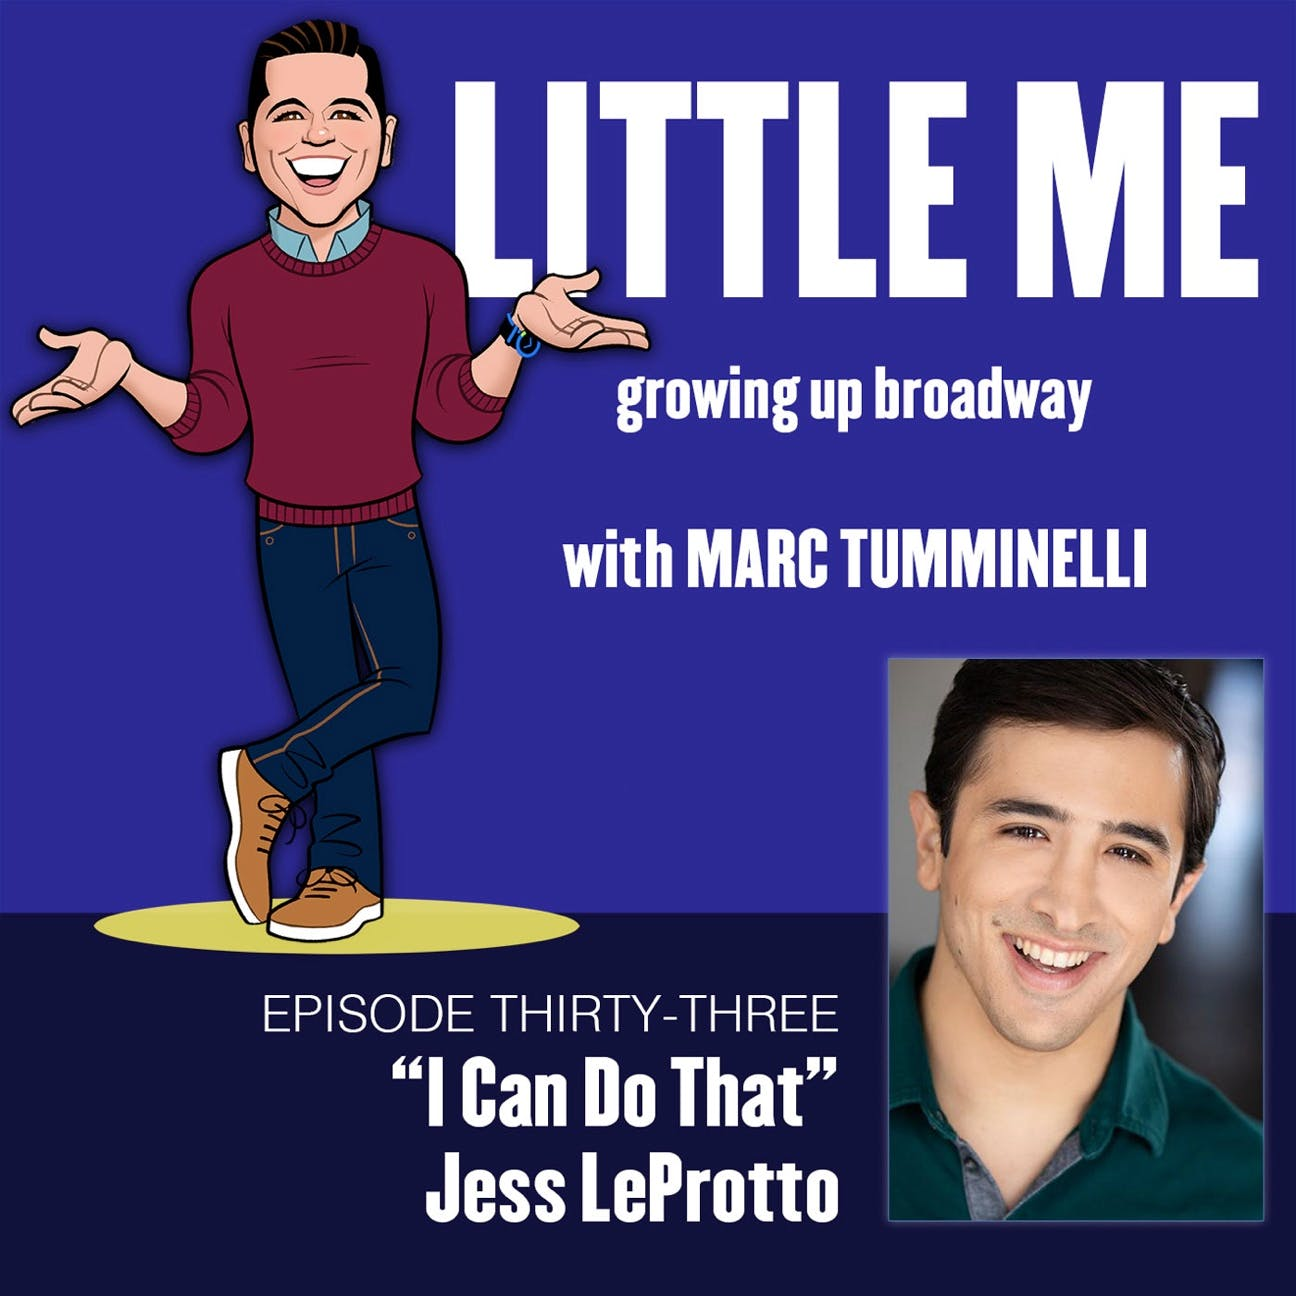 EP33 - Jess LeProtto - I Can Do That